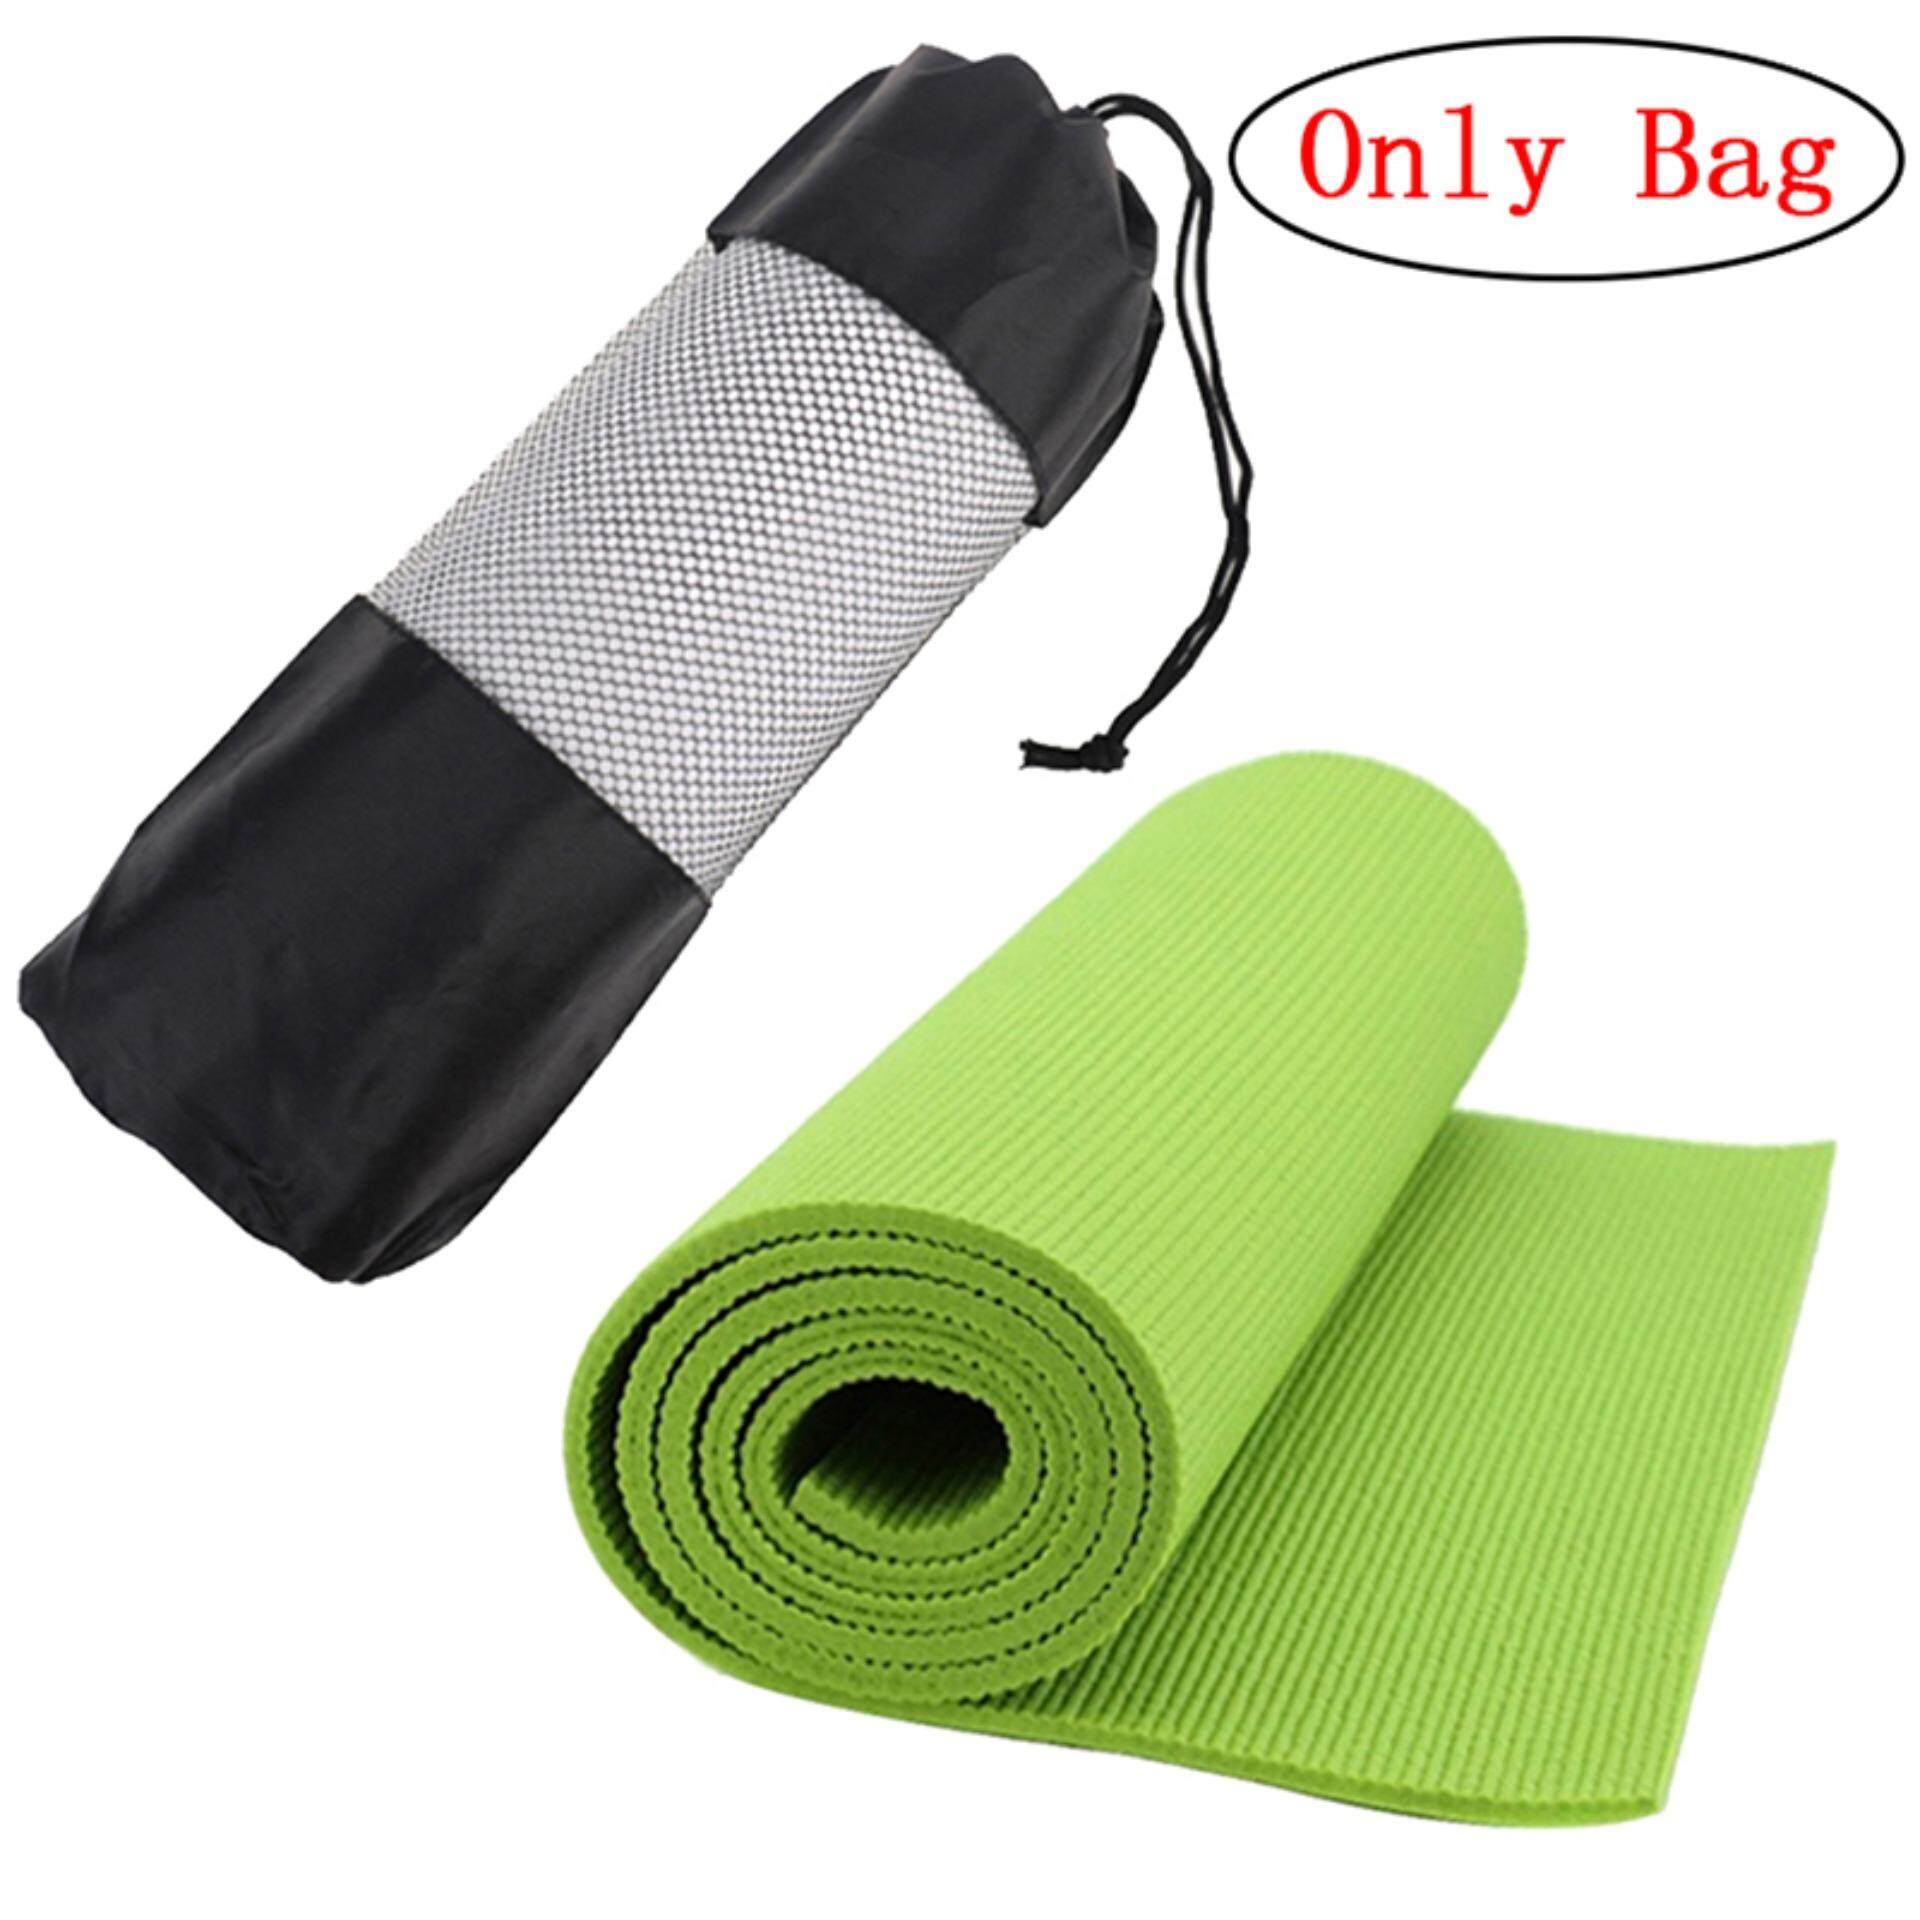 Ropa, Calzado Y Complementos Yoga Mat Carrier Gym Bag With Side Pockets Durable Canvas Carry Strap Drawstring Backpack For Yoga Pilates Gym Fitness Training Pretty And Colorful